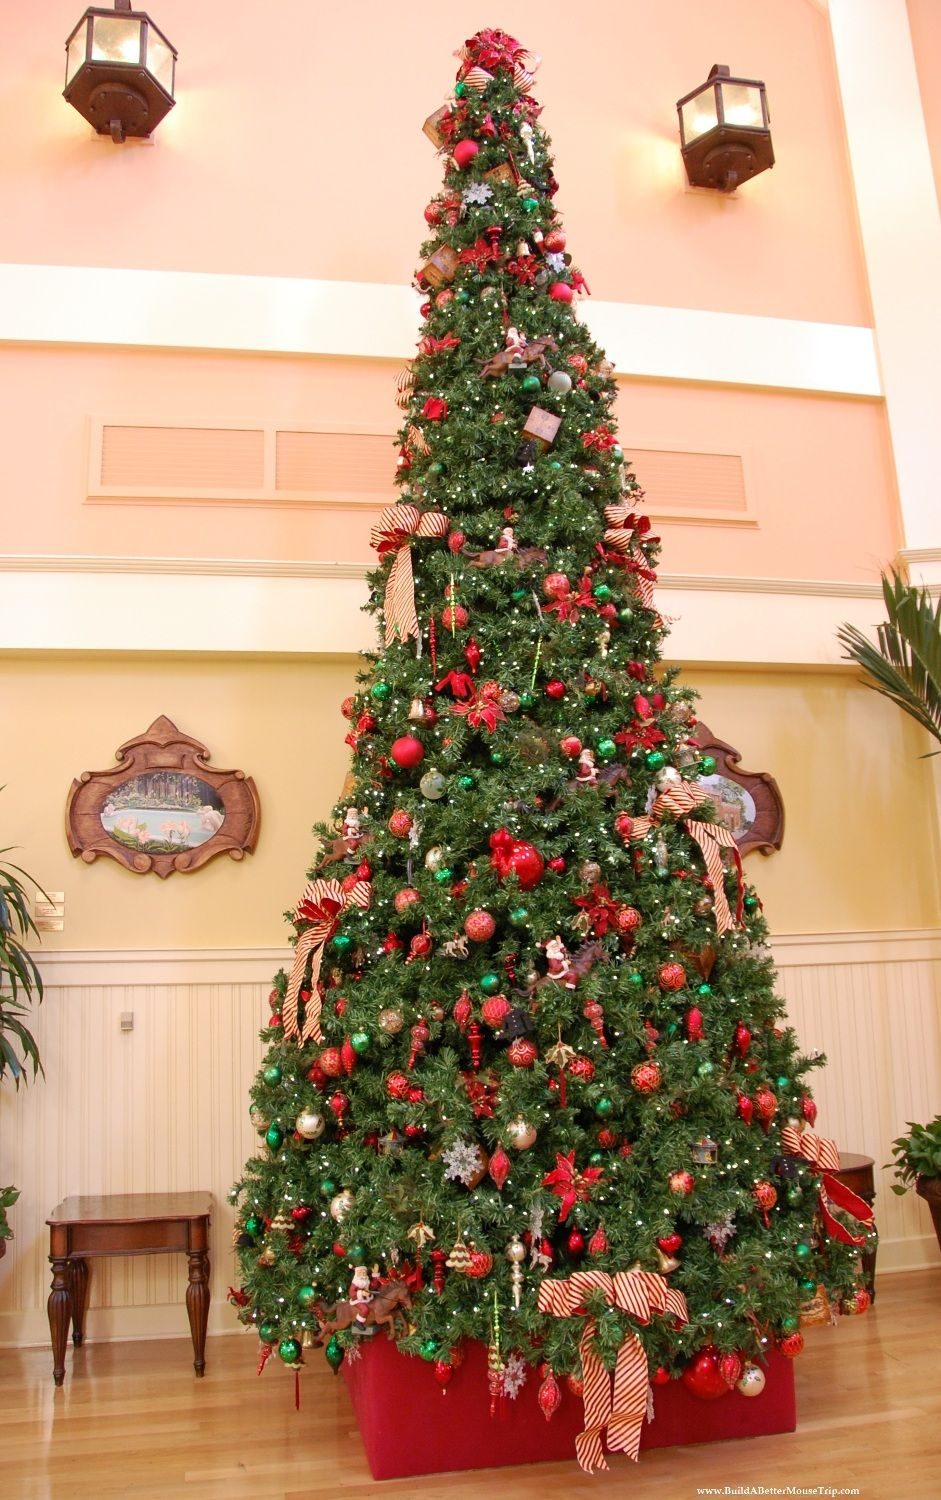 Disney World puts up 1300 Christmas Trees every holiday season.  This beautiful tree is from lobby at Disney's Saratoga Springs Resort.  Top 10 Tips for Visiting Disney World in December, see: http://www.squidoo.com/top-10-tips-for-visiting-disney-world-in-december  #DisneyWorld #Disney